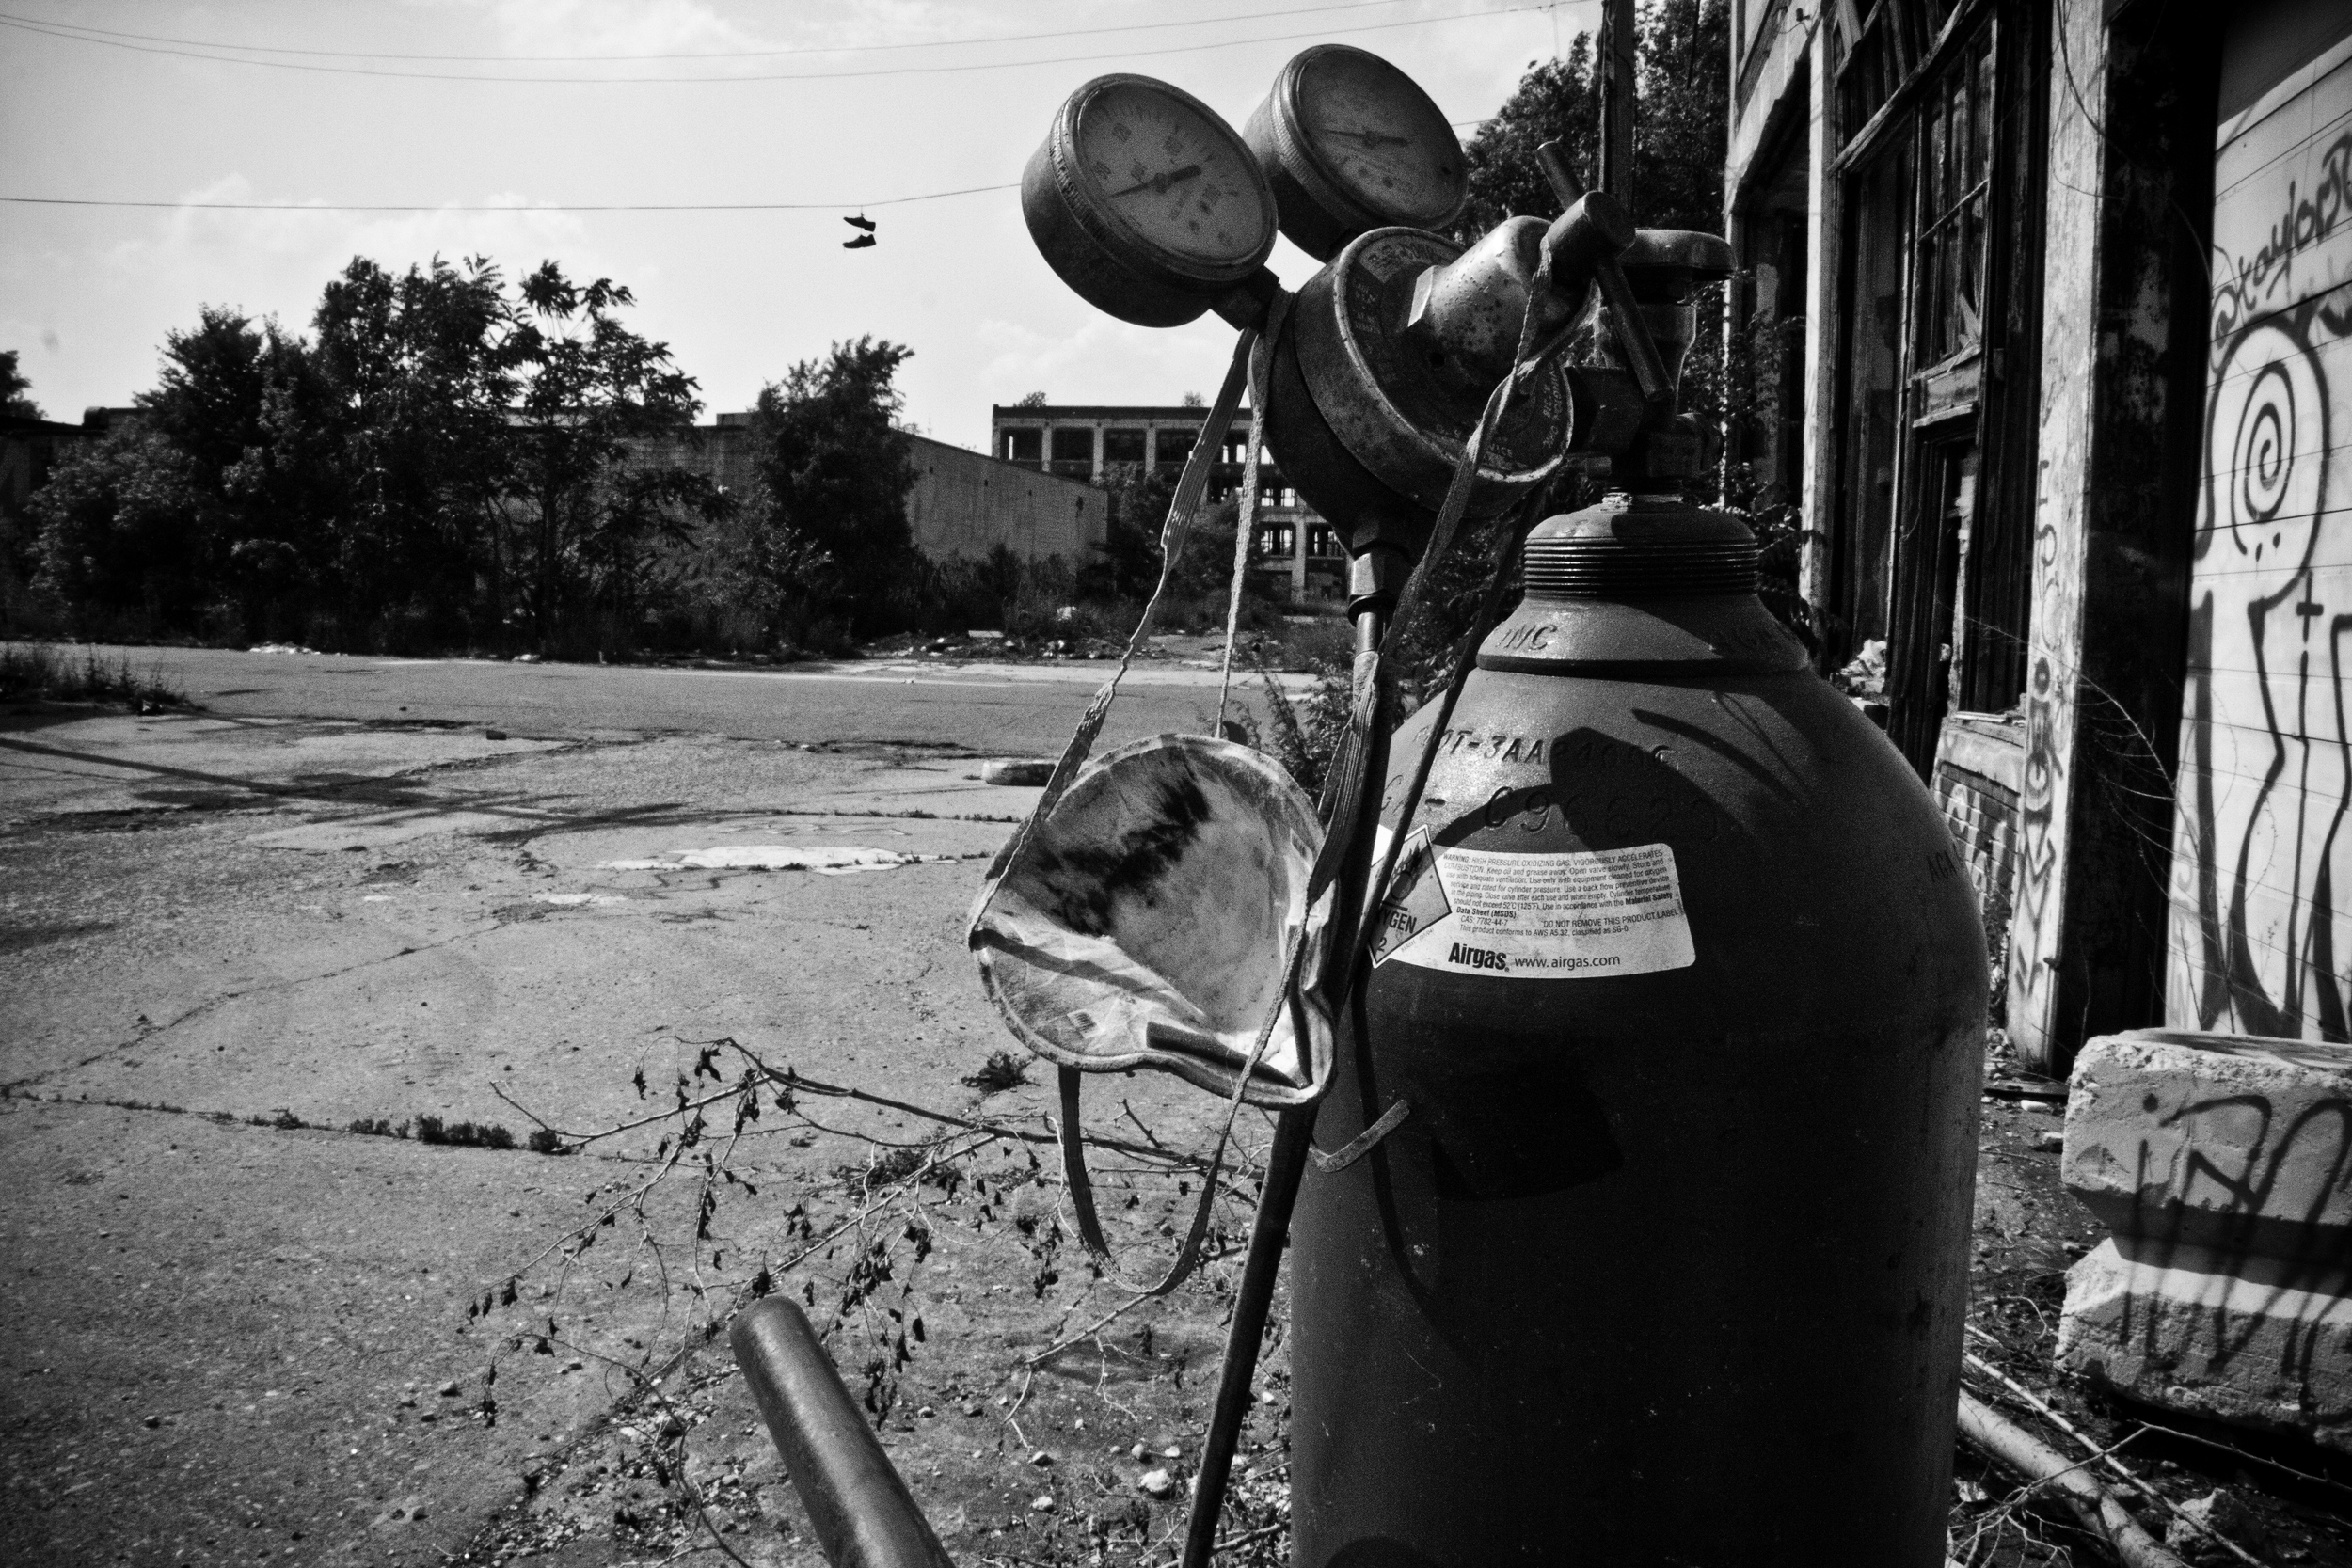 A mobile torch and tank sit outside an entrance to the Packard Plant while a scrapper searches inside for valuable metal.